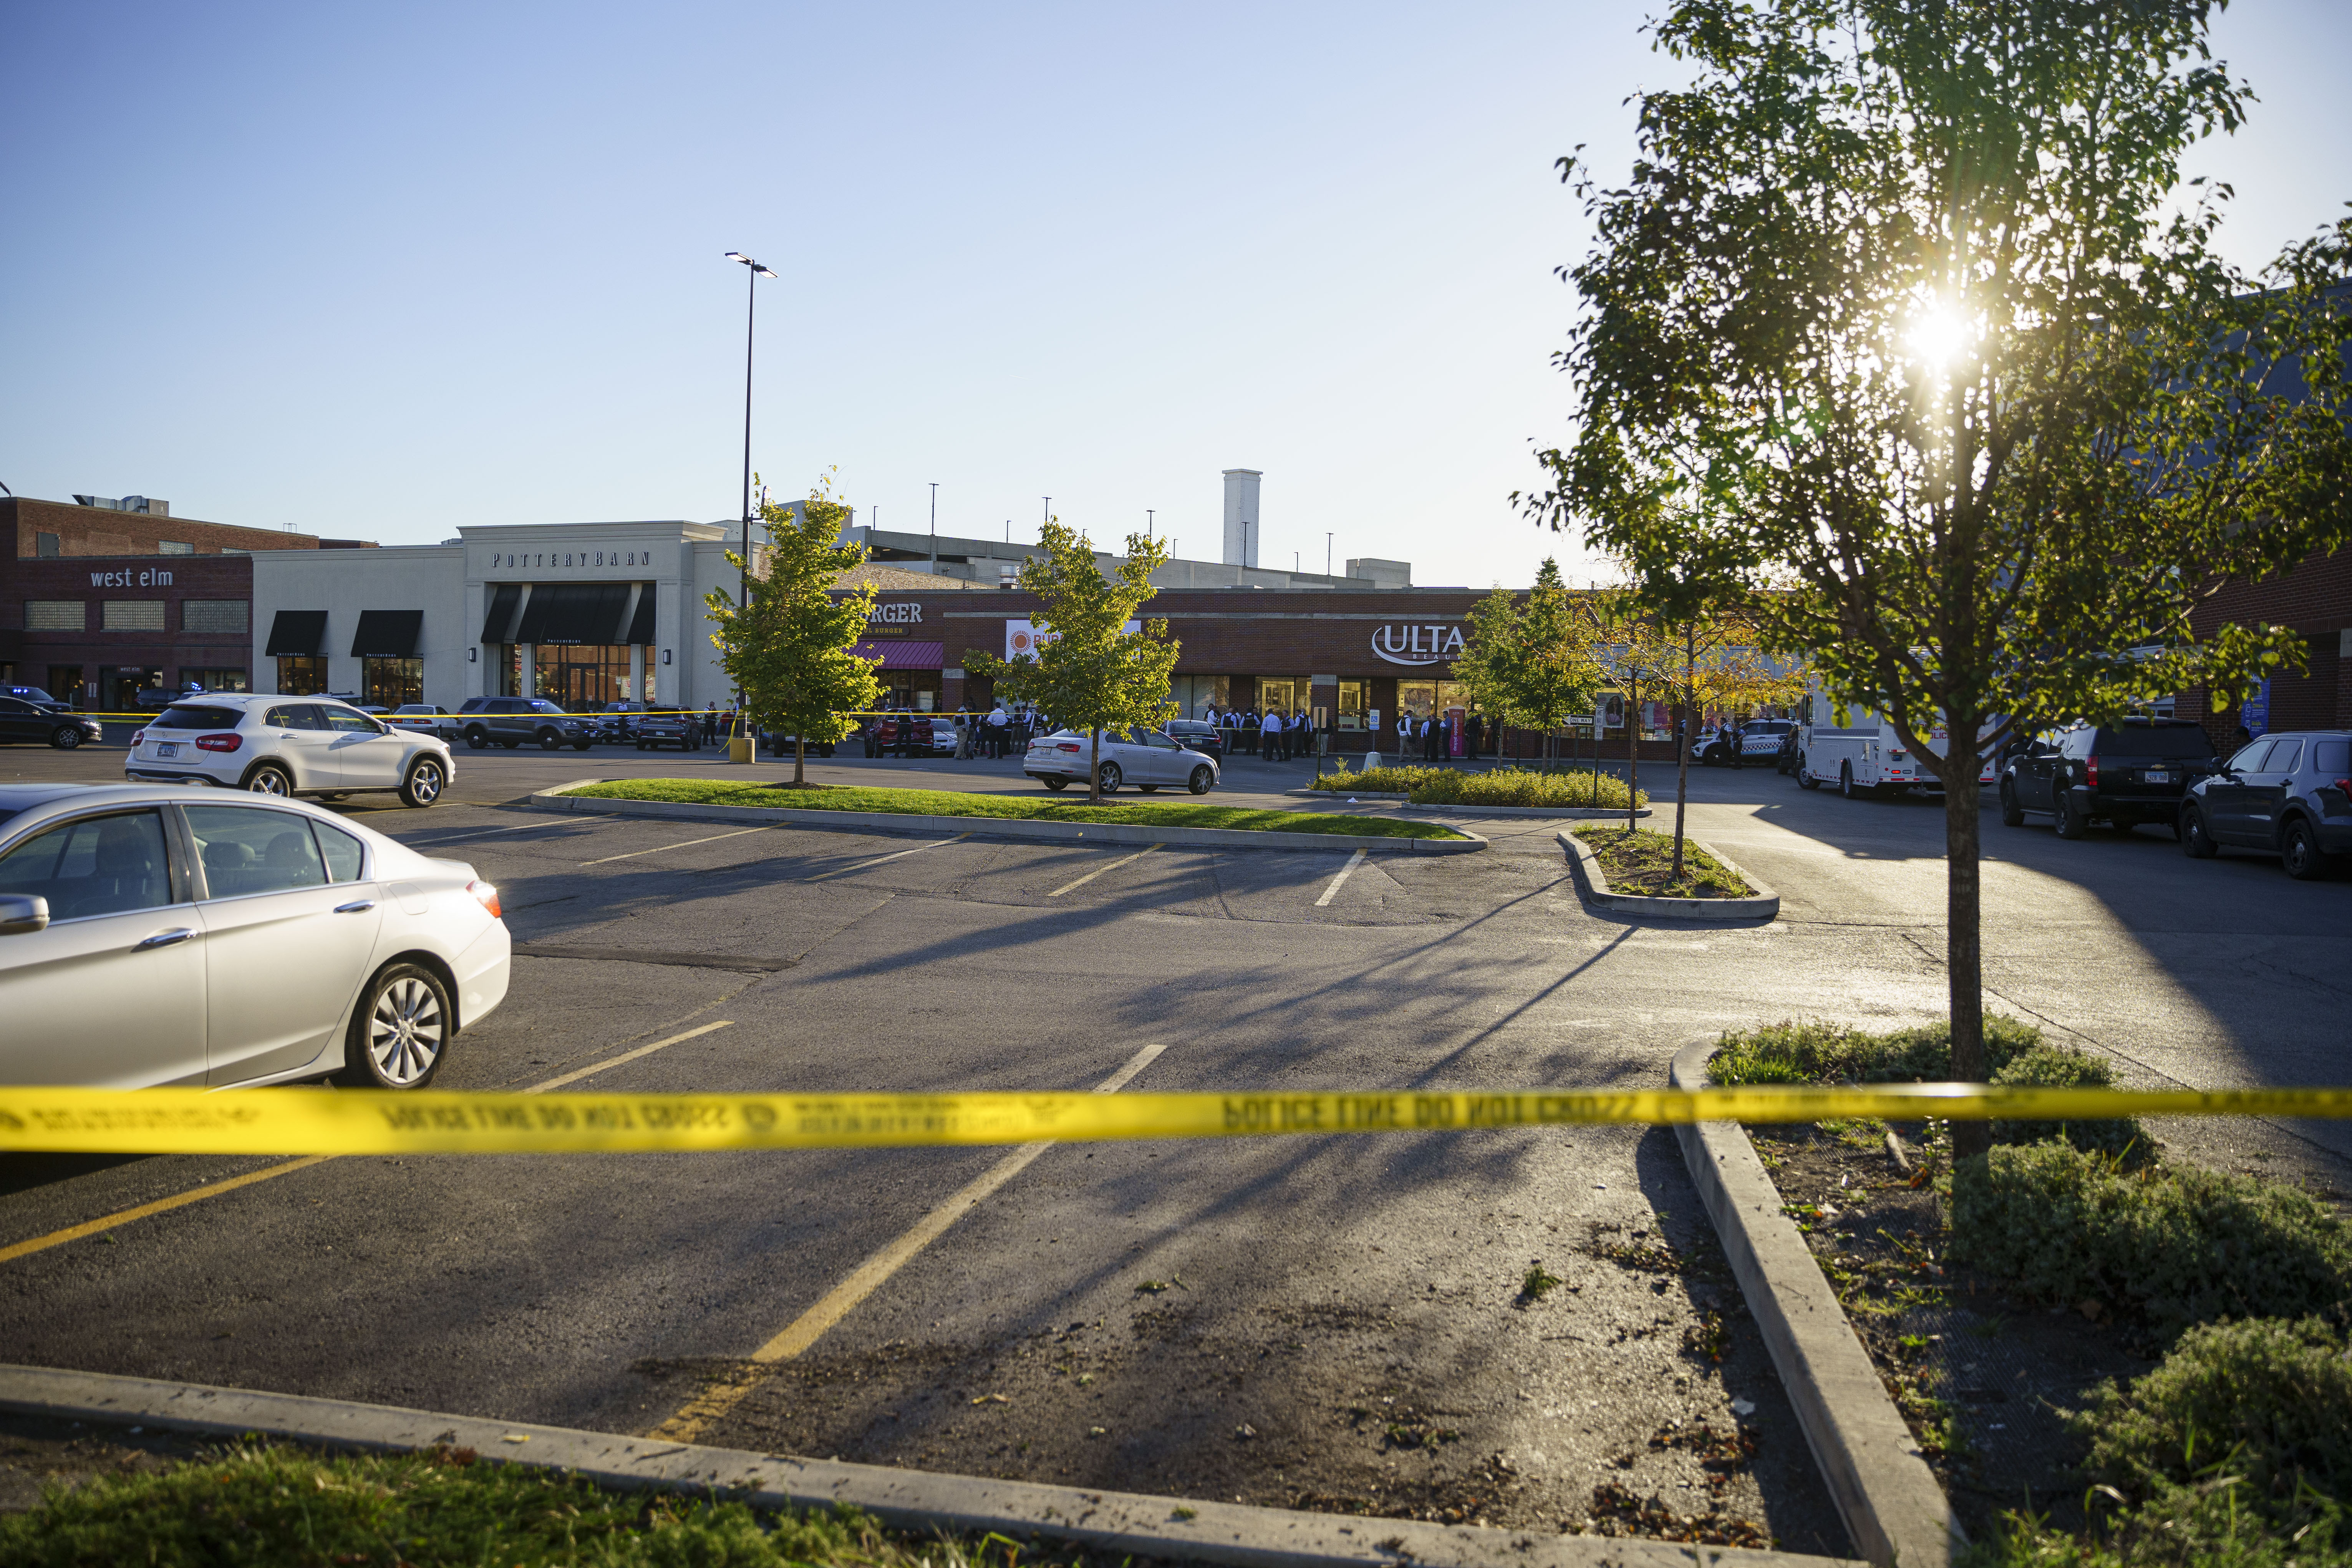 Police investigate the scene where a police officer was shot, Monday, Oct. 18, 2021, in the parking lot of a shopping center at 1000 W. North Ave. in Lincoln Park.